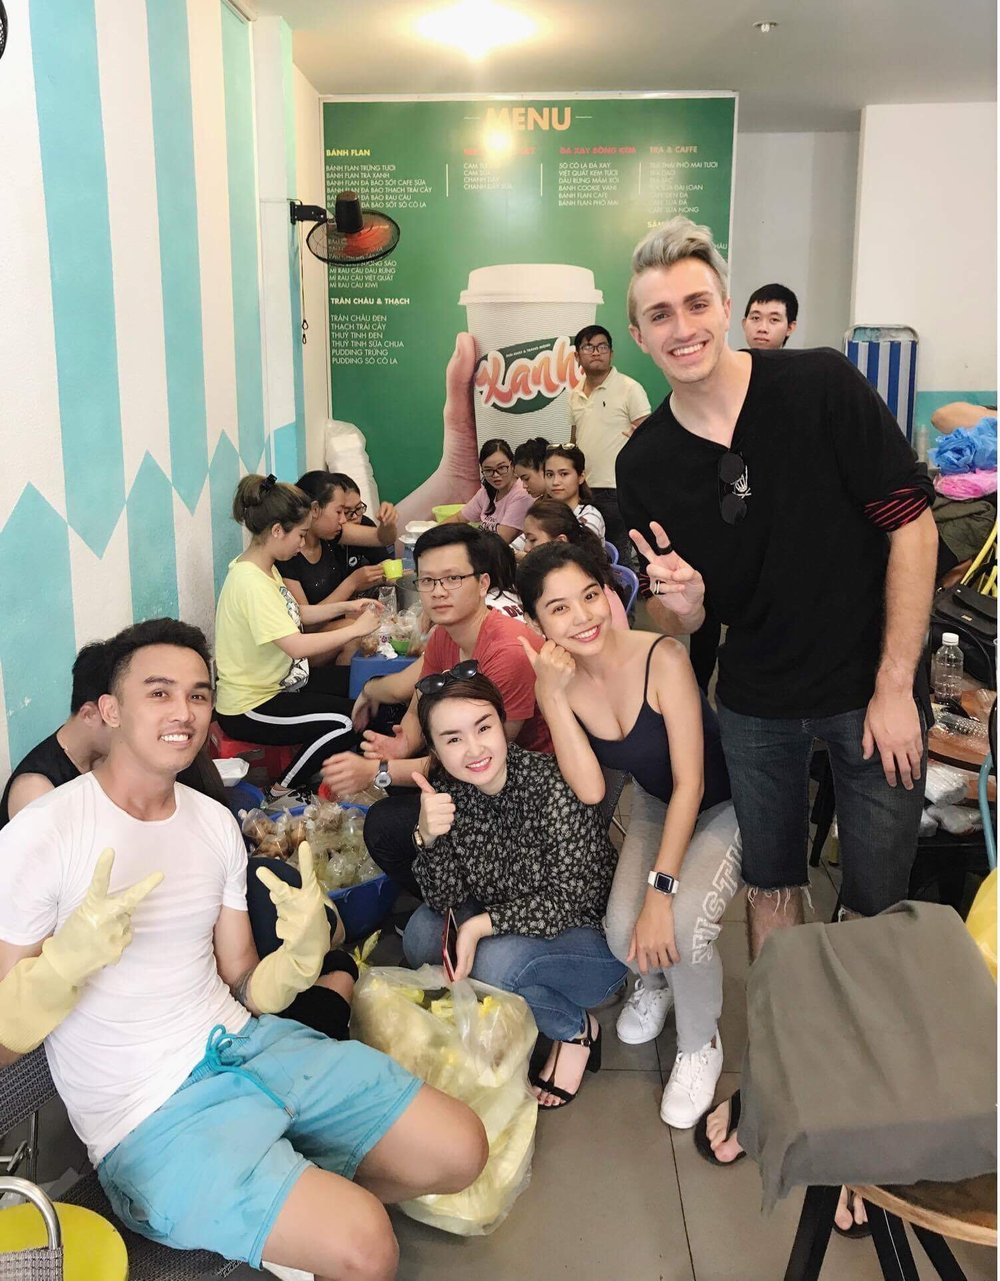 Food for the Homeless - I had the oppurtunity be able to give out food to the homeless on the streets of Saigon, Vietnam! Read about my experience!